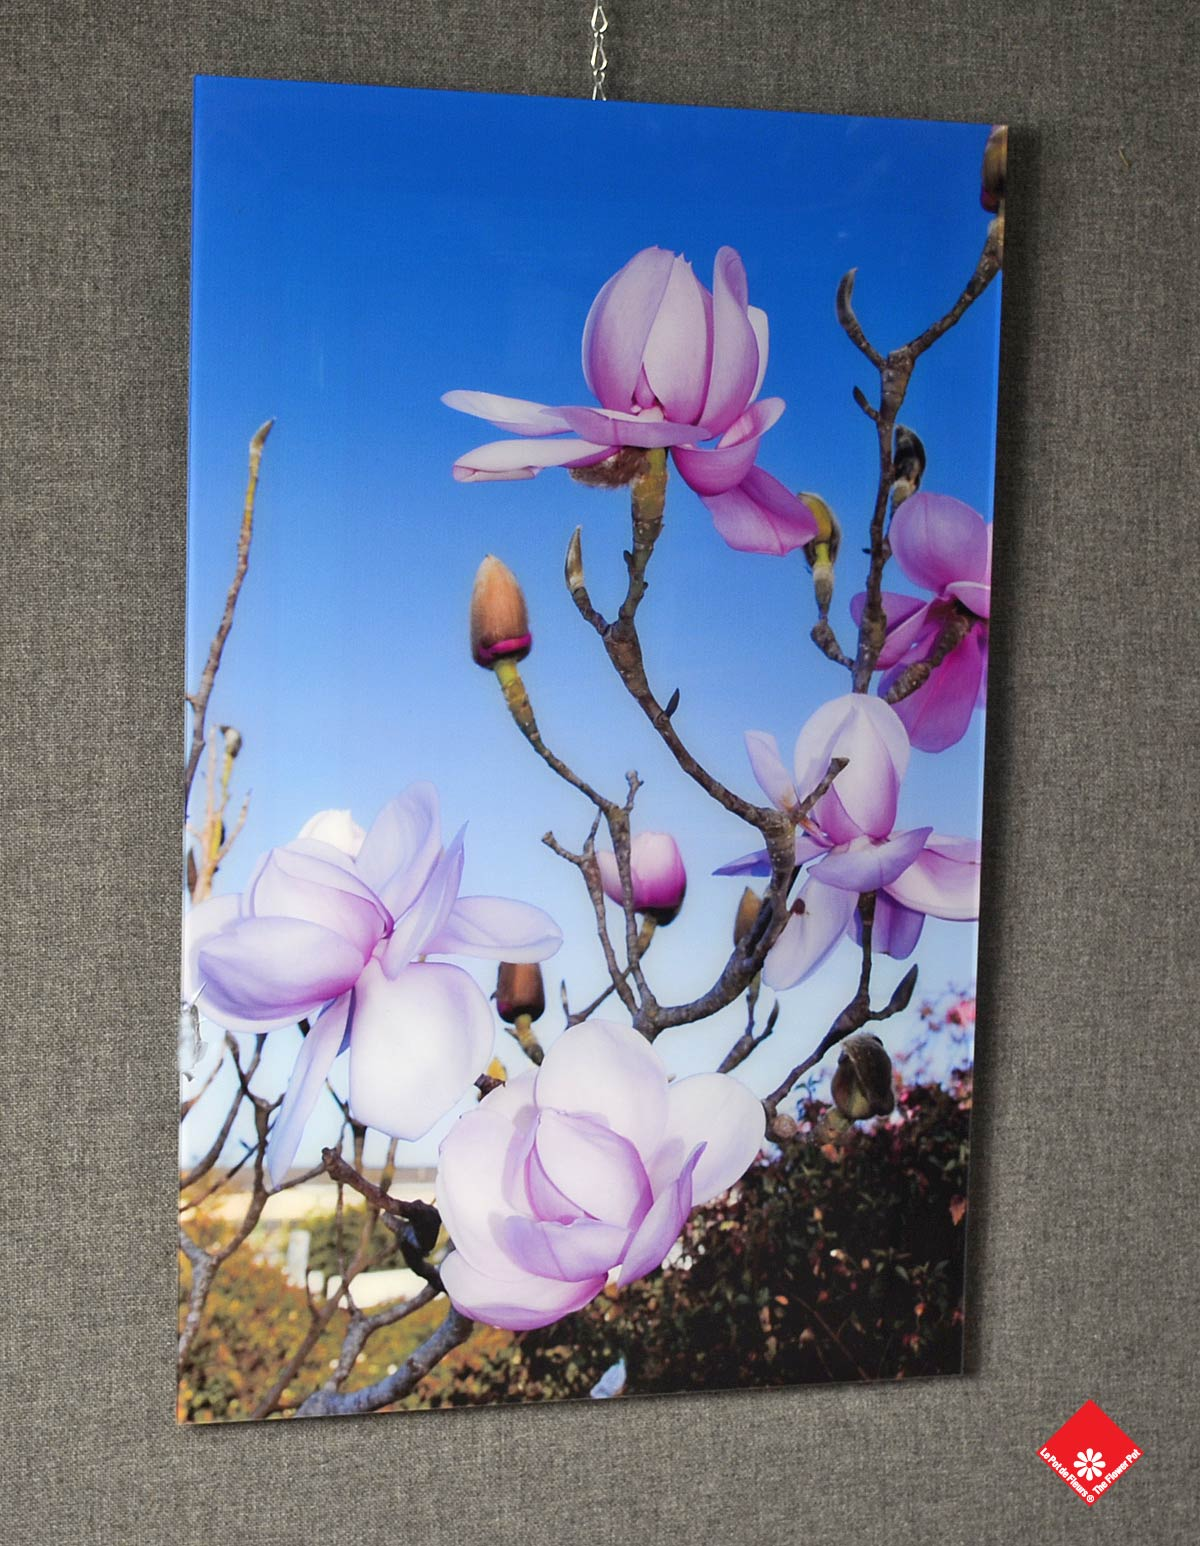 Bring the outside inside with the HD flower picture on acrylic.